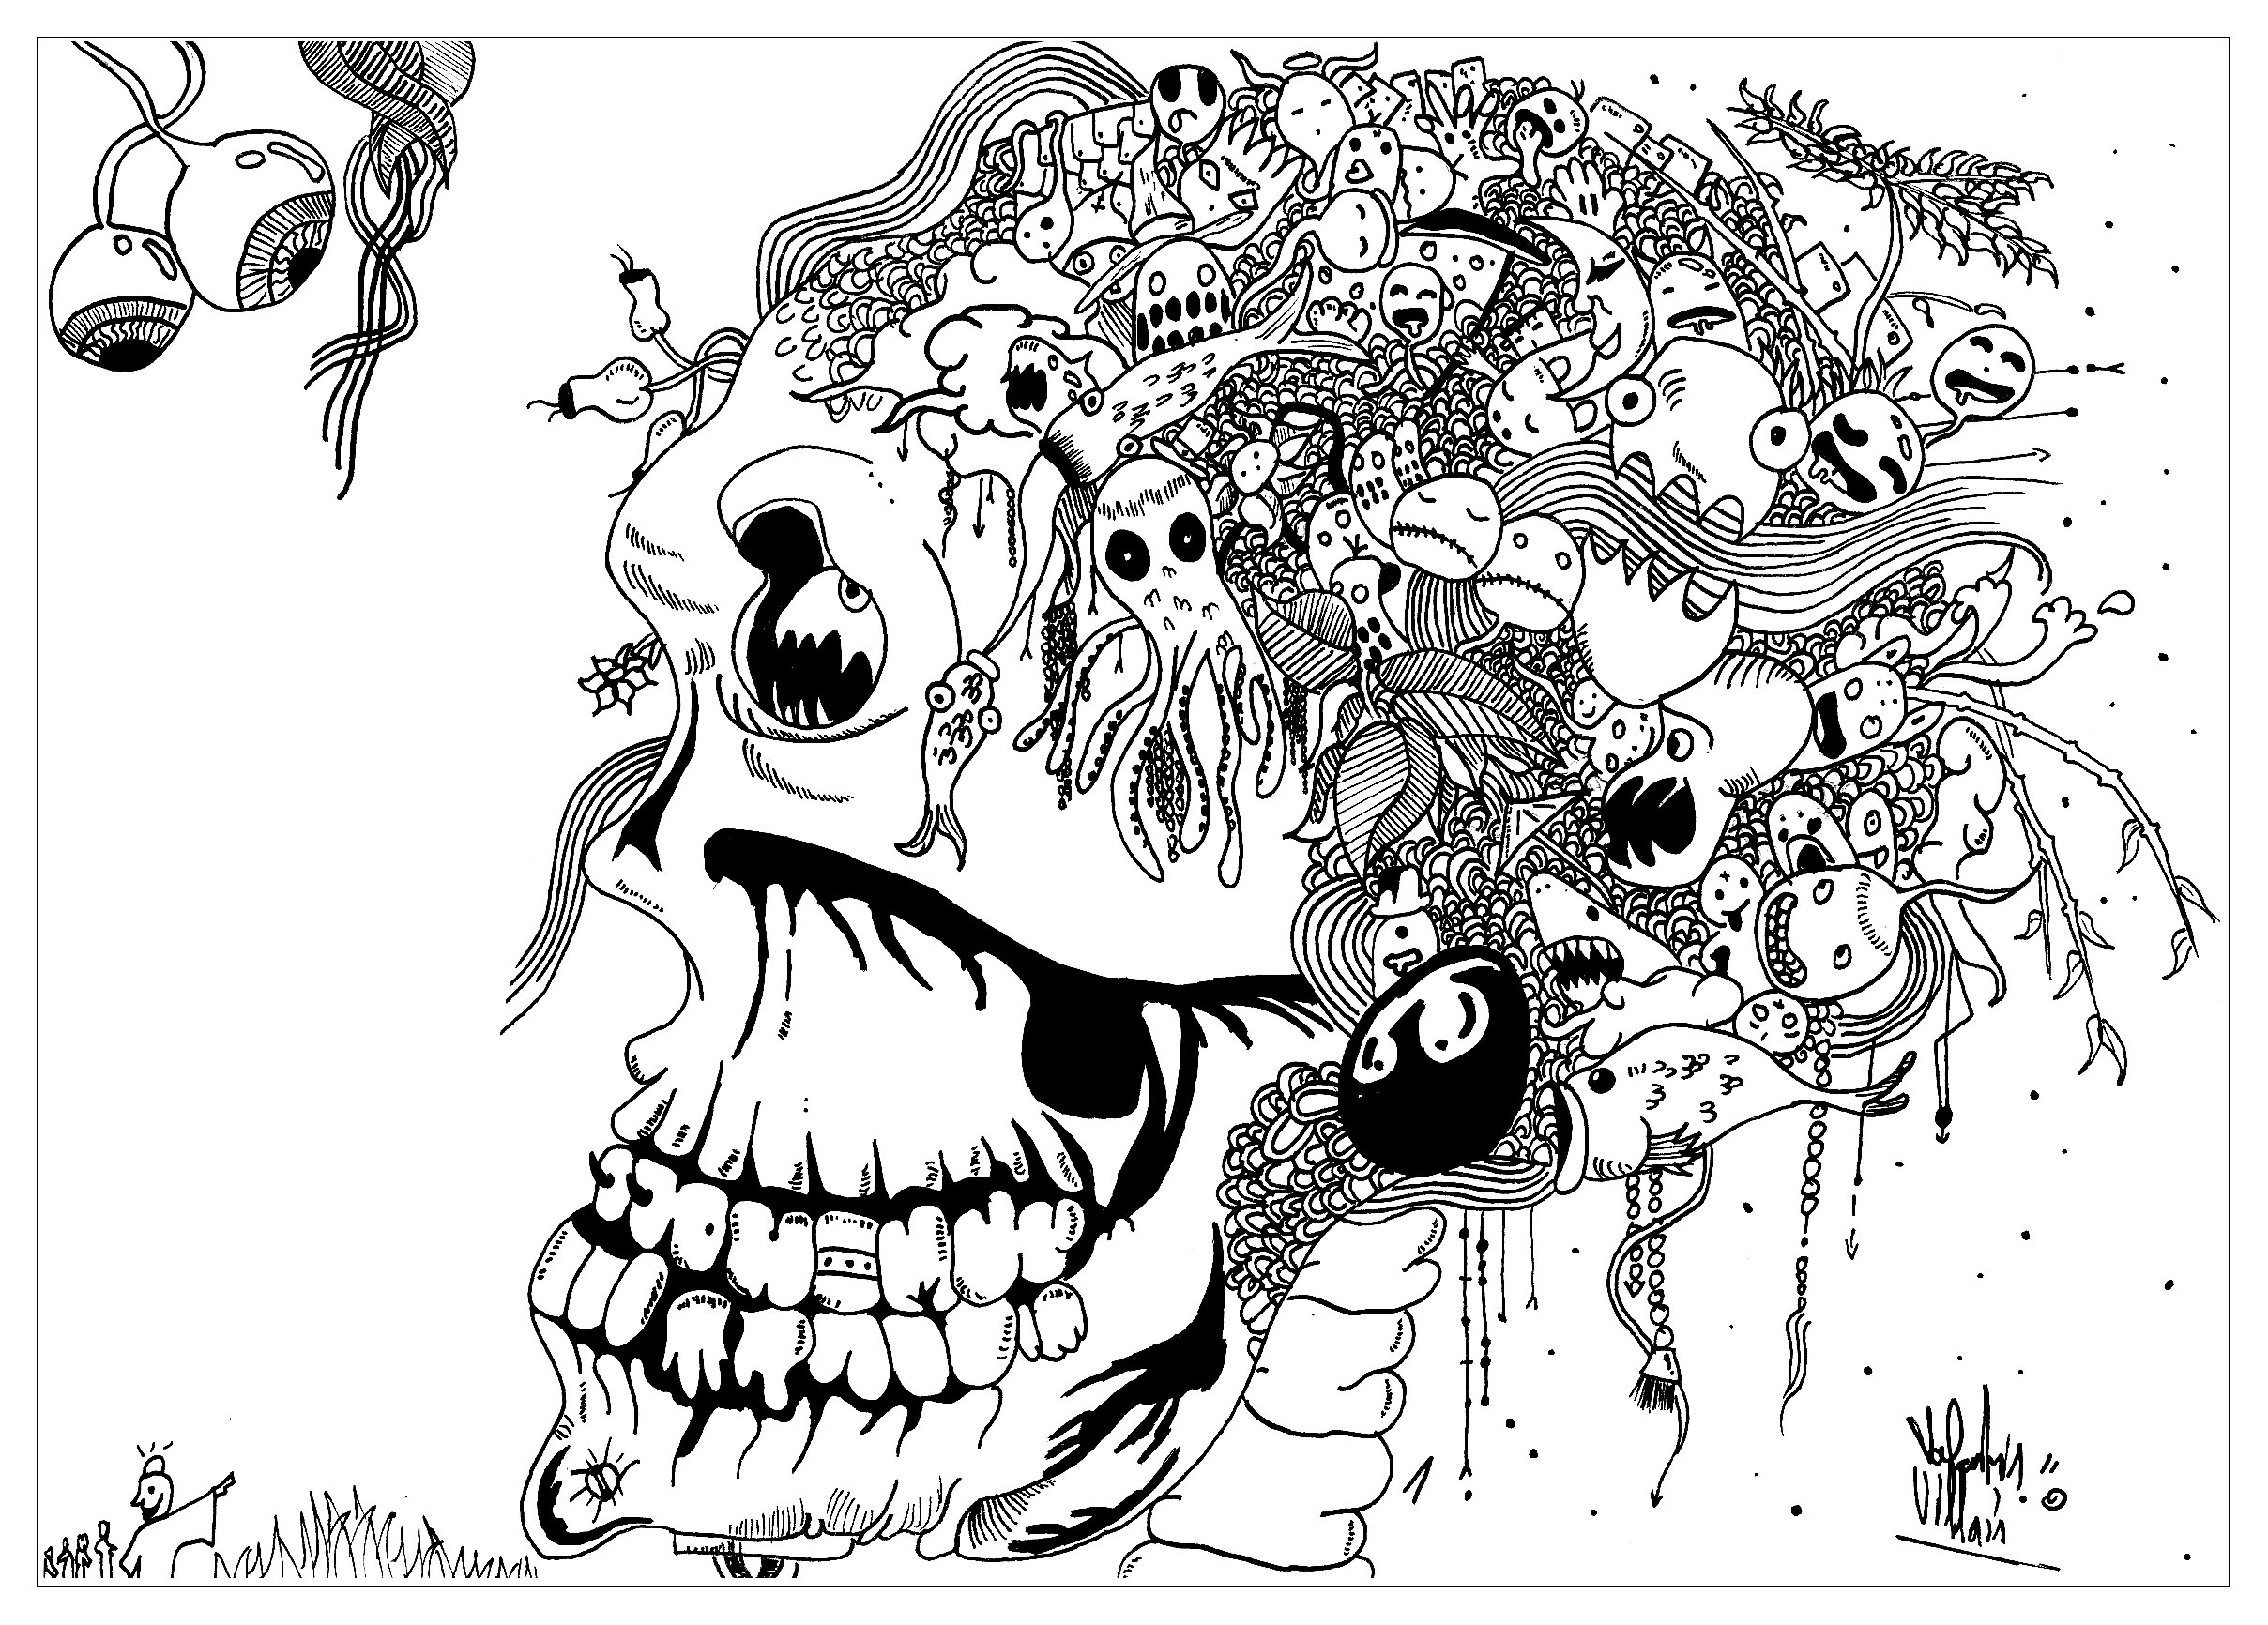 Coloring pages for adults for free - Coloring Page Adult Draw Doodle By Valentin